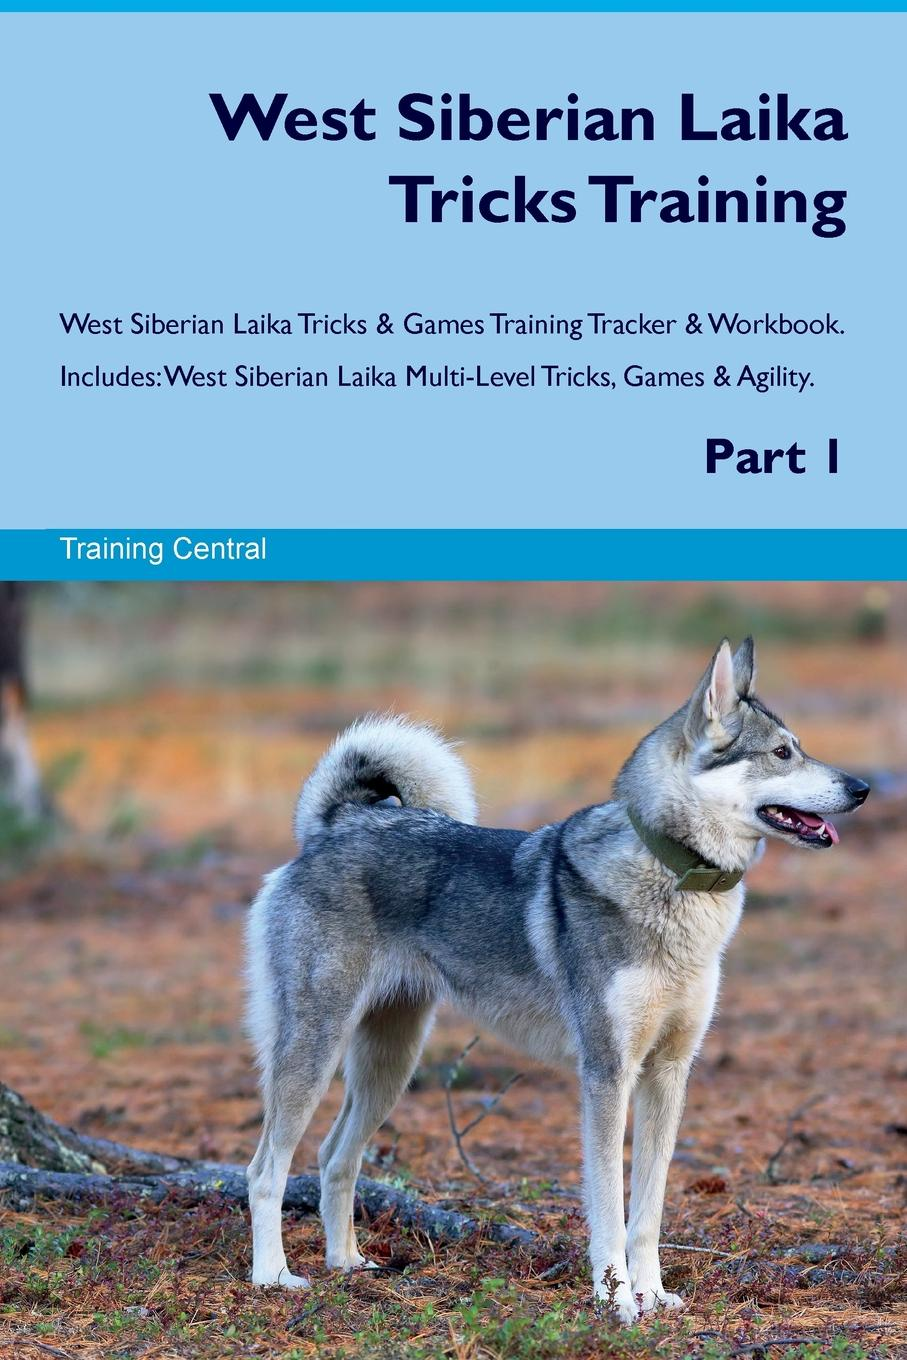 Training Central West Siberian Laika Tricks Training West Siberian Laika Tricks & Games Training Tracker & Workbook. Includes. West Siberian Laika Multi-Level Tricks, Games & Agility. Part 1 training central west siberian laika tricks training west siberian laika tricks games training tracker workbook includes west siberian laika multi level tricks games agility part 2